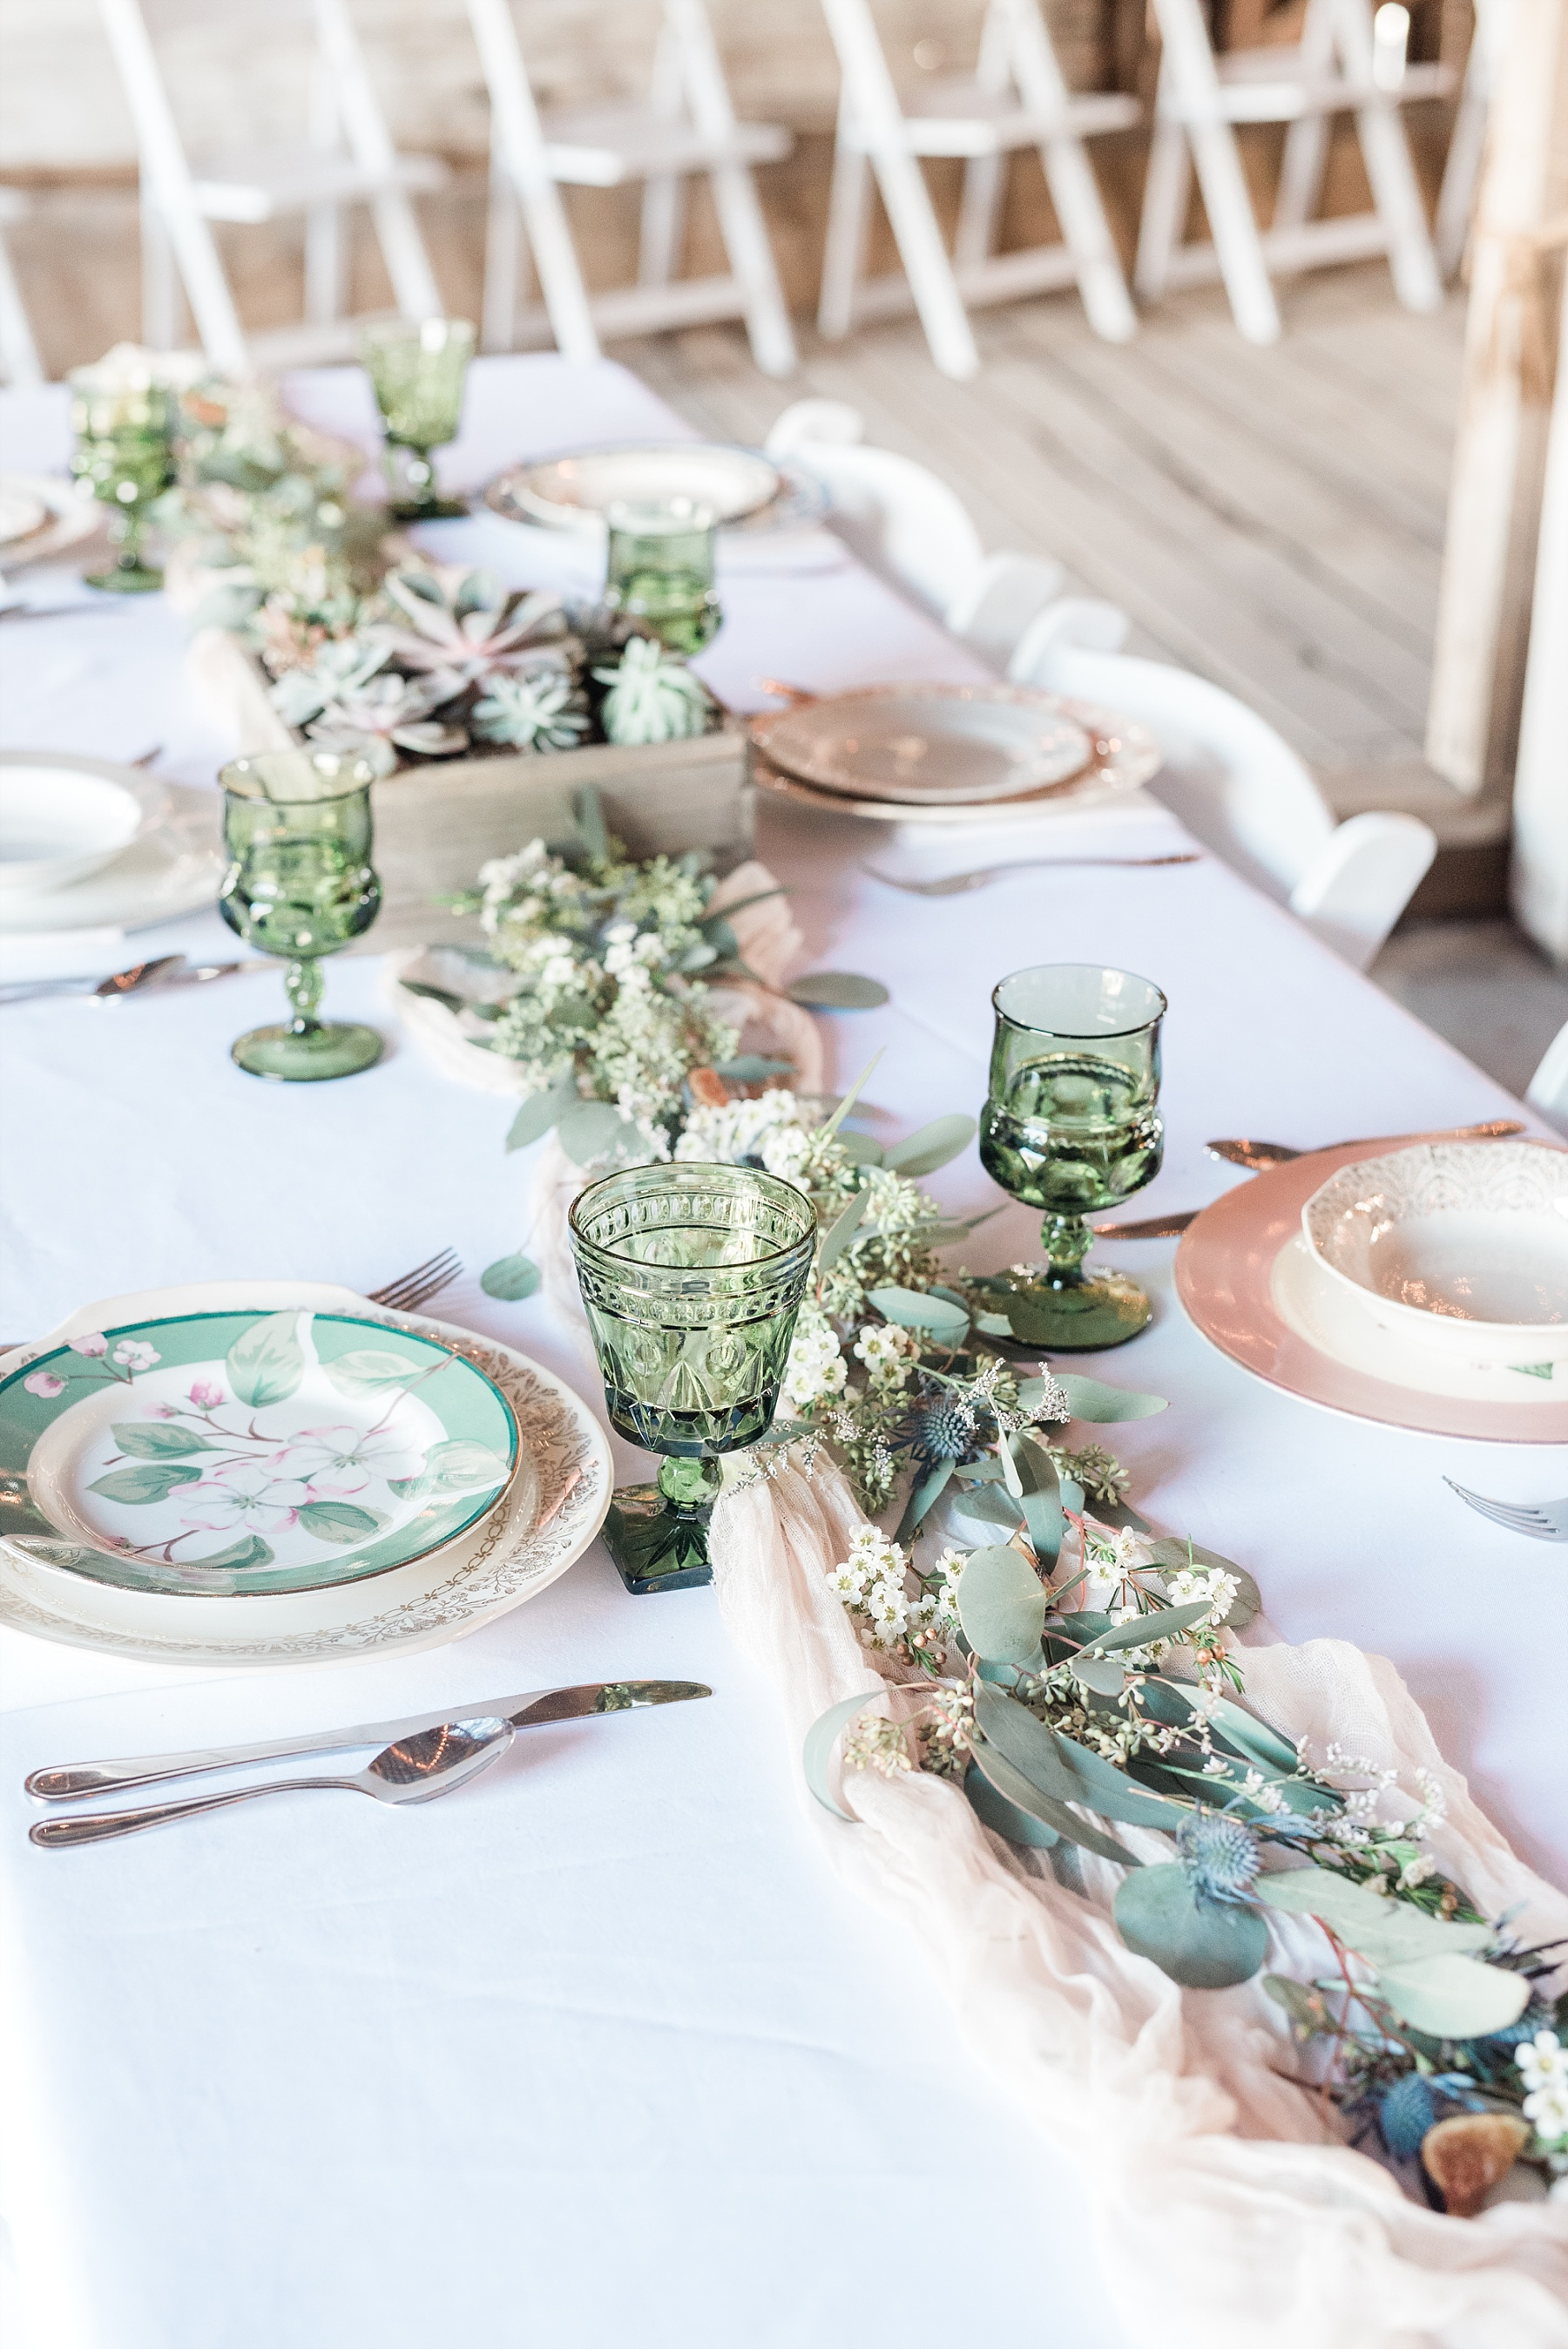 Fine Art Sunset Themed Wedding in Autumn at Dodson Orchards by Kelsi Kliethermes Photography_0068.jpg